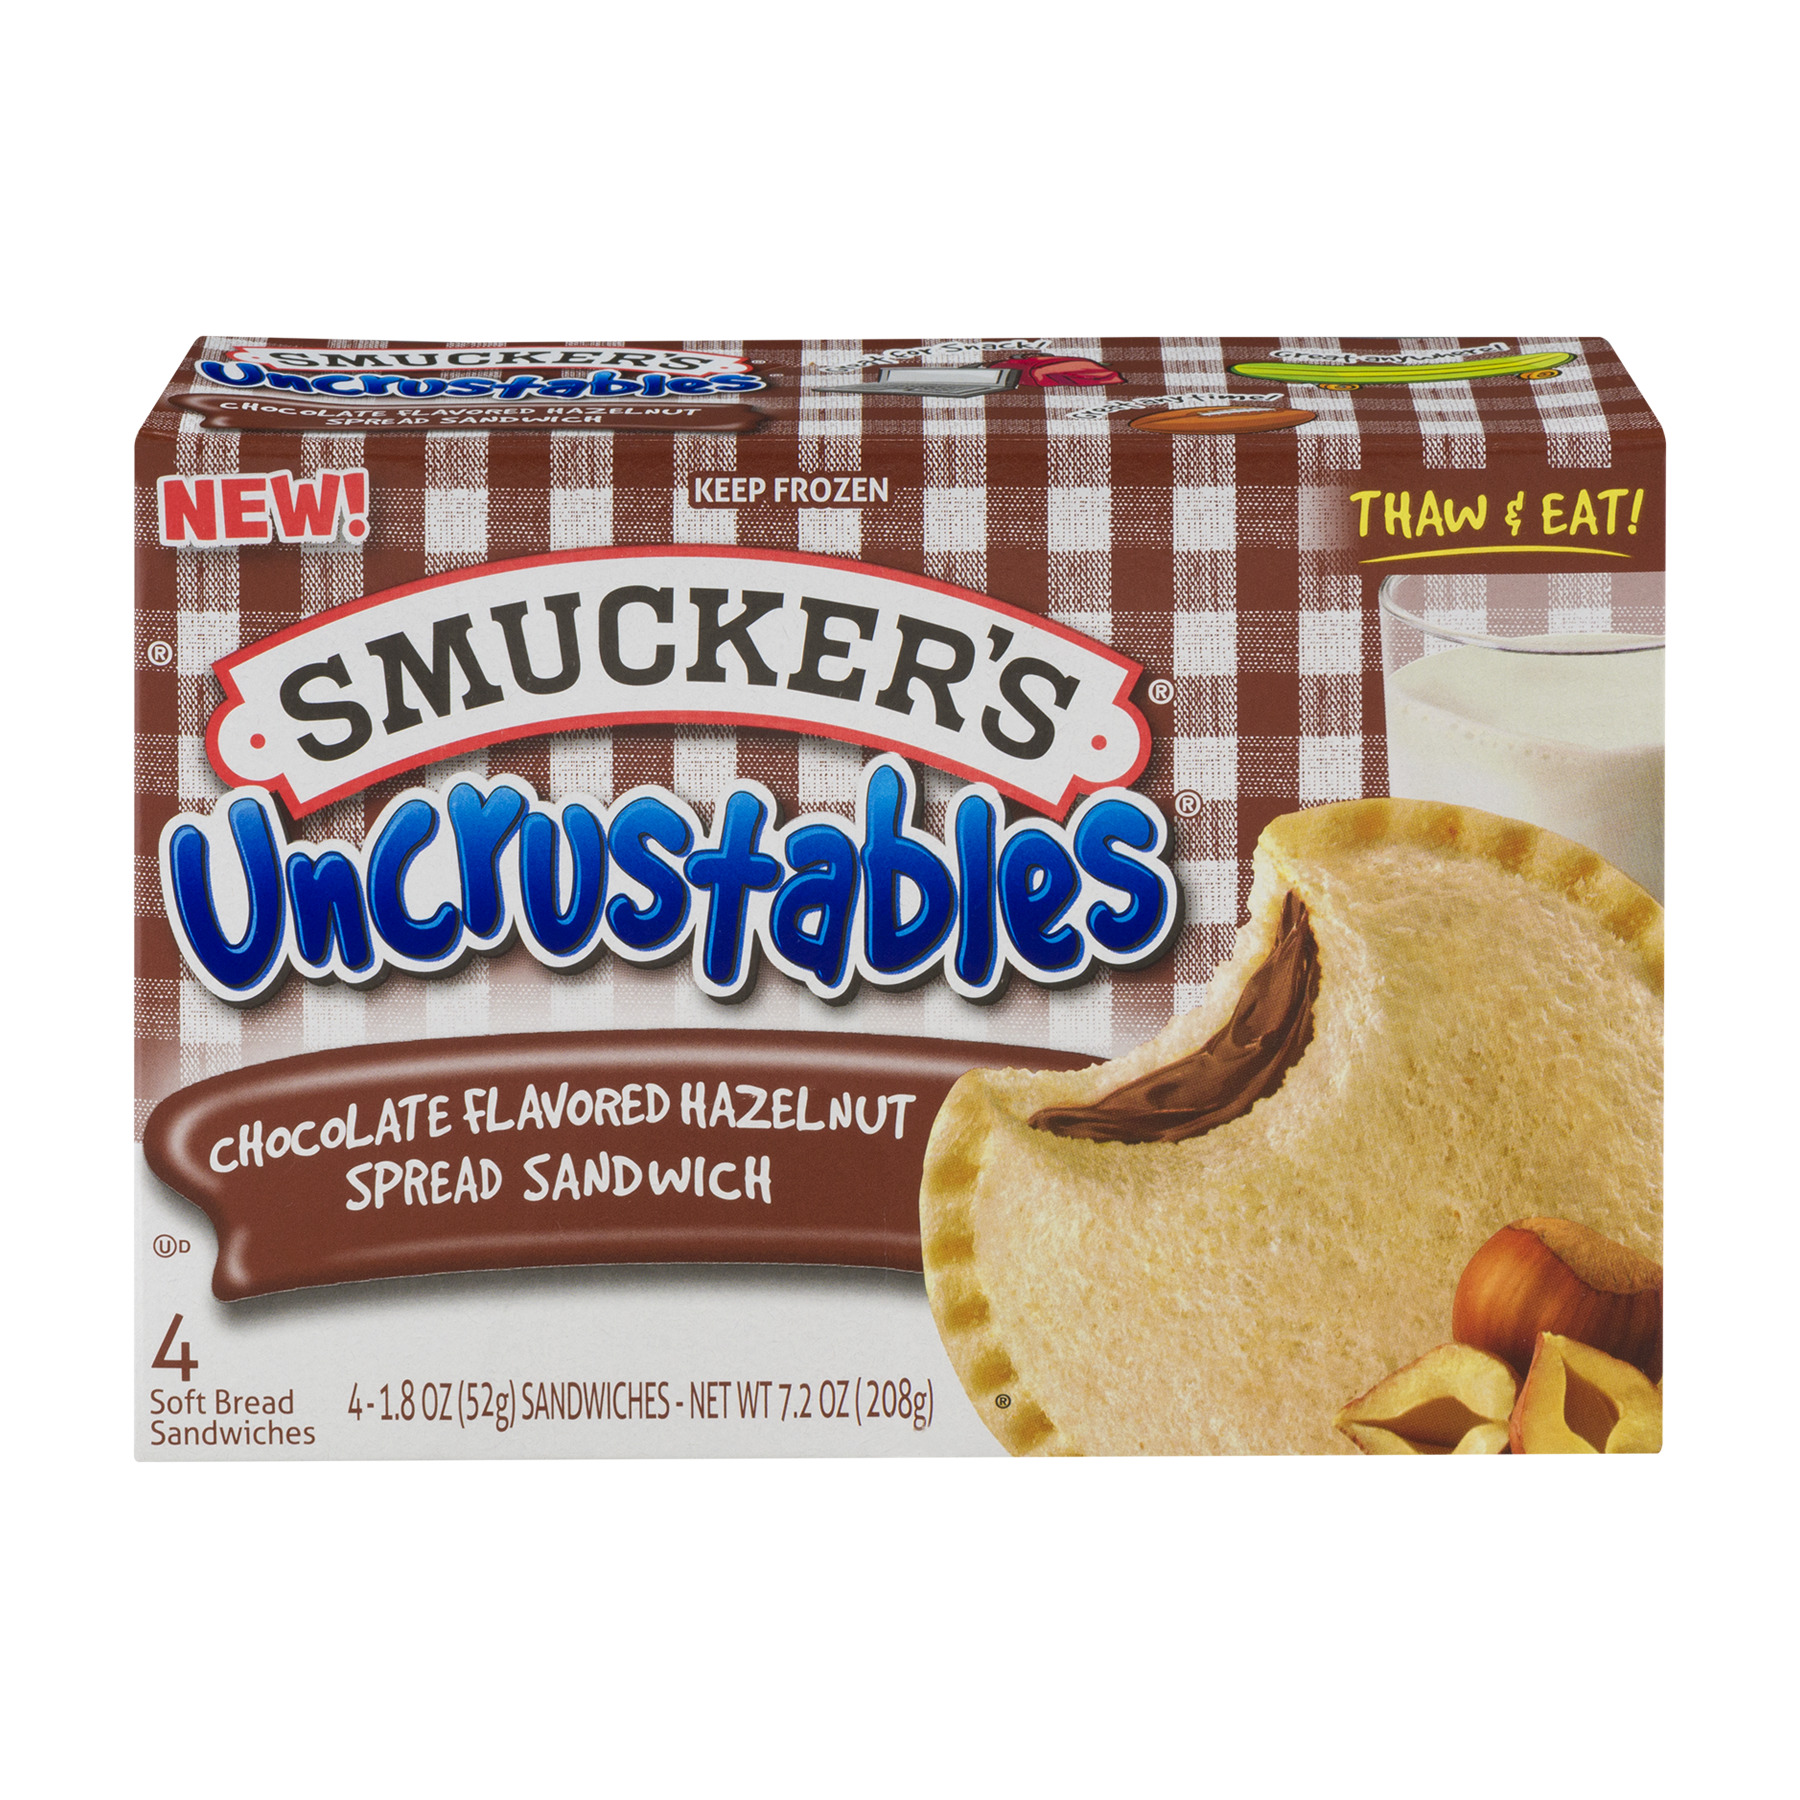 Smucker's Uncrustables Chocolate Flavored Hazelnut Spread Sandwich - 4 CT1.8 OZ